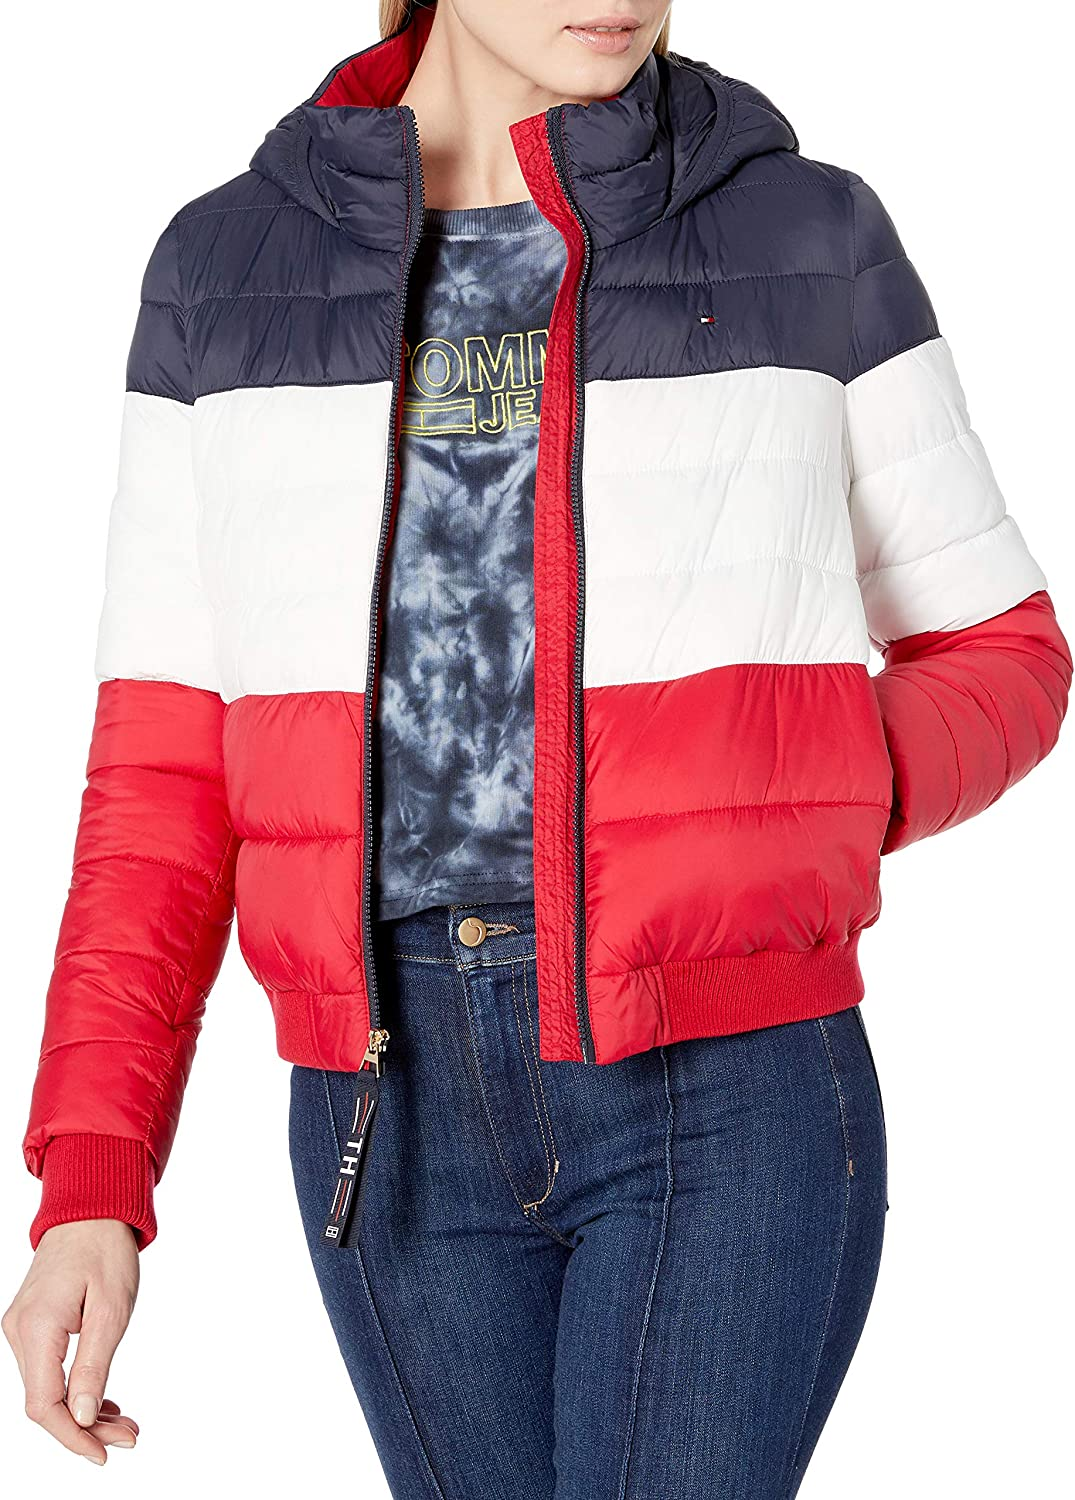 Tommy Hilfiger Womens Cropped Tri-color Jacket